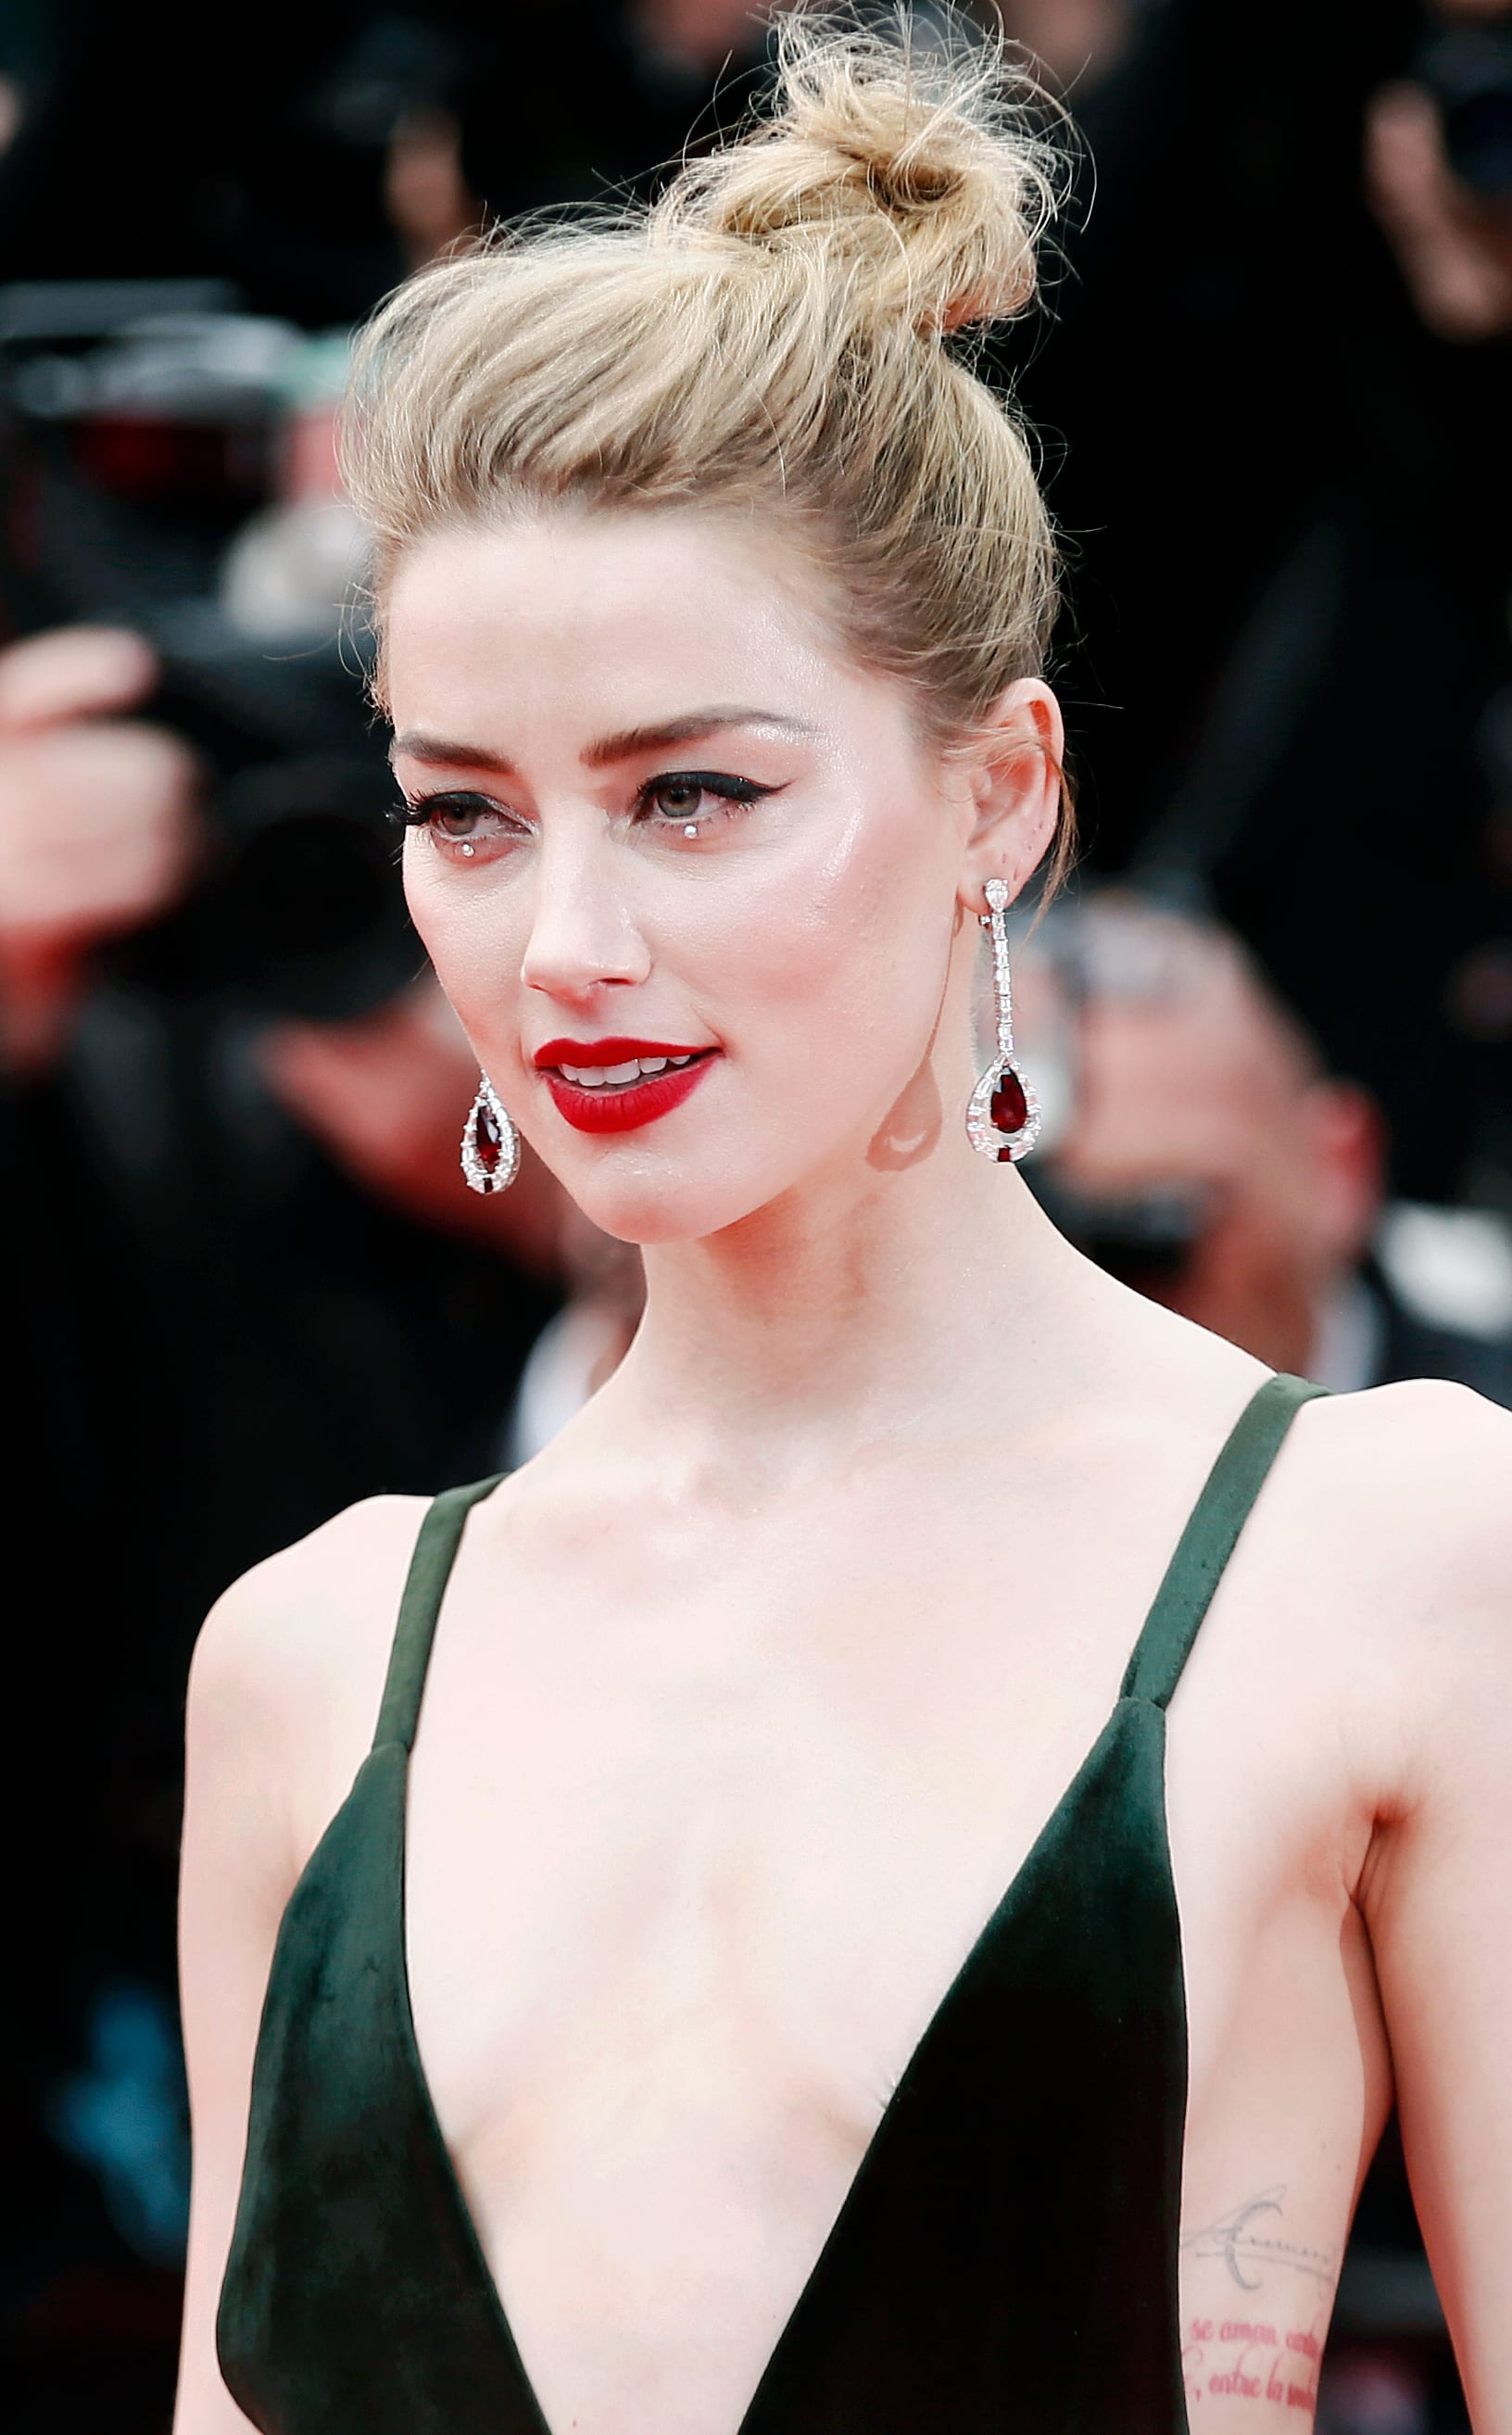 Amber Heard's Top Knot